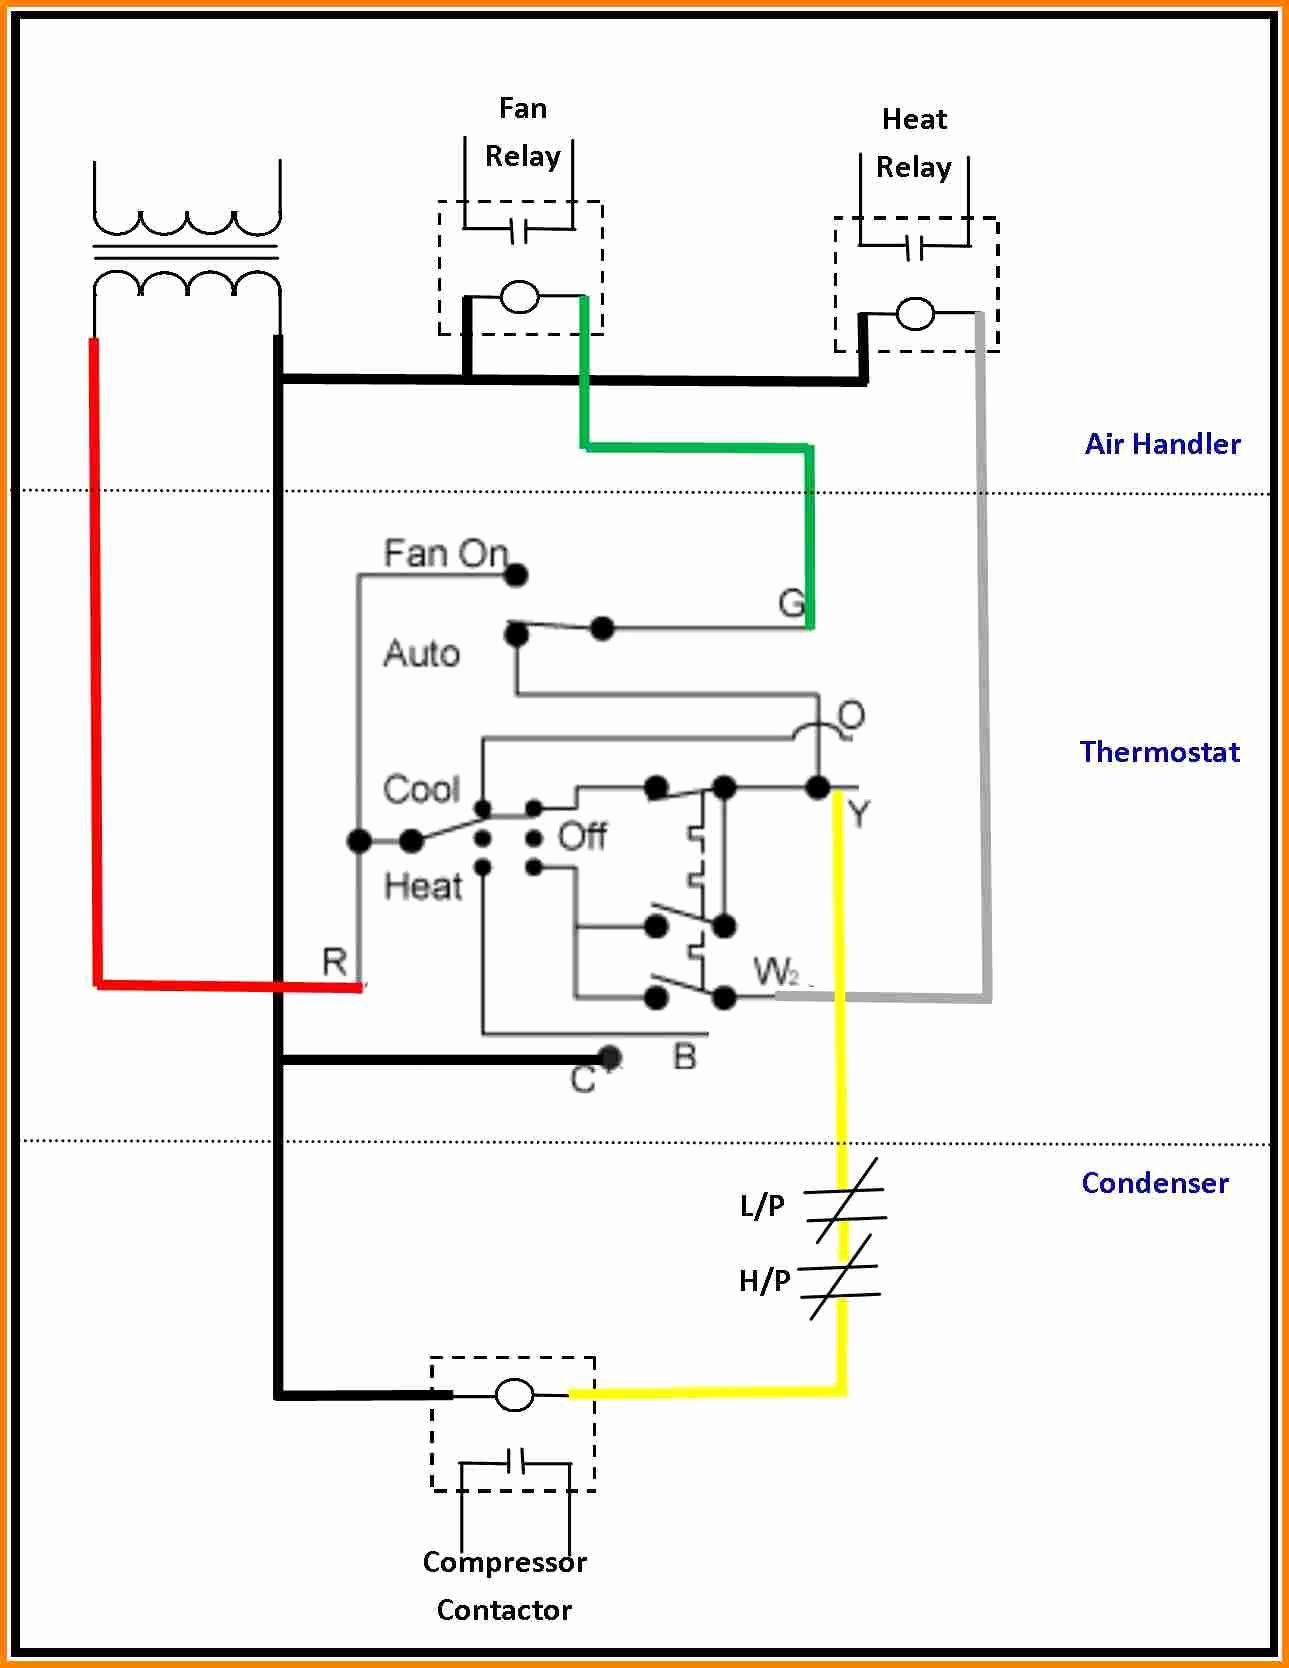 Oasis Wiring Diagram - The Types Of Wiring Diagram • - Oasis Trailer Wiring Diagram